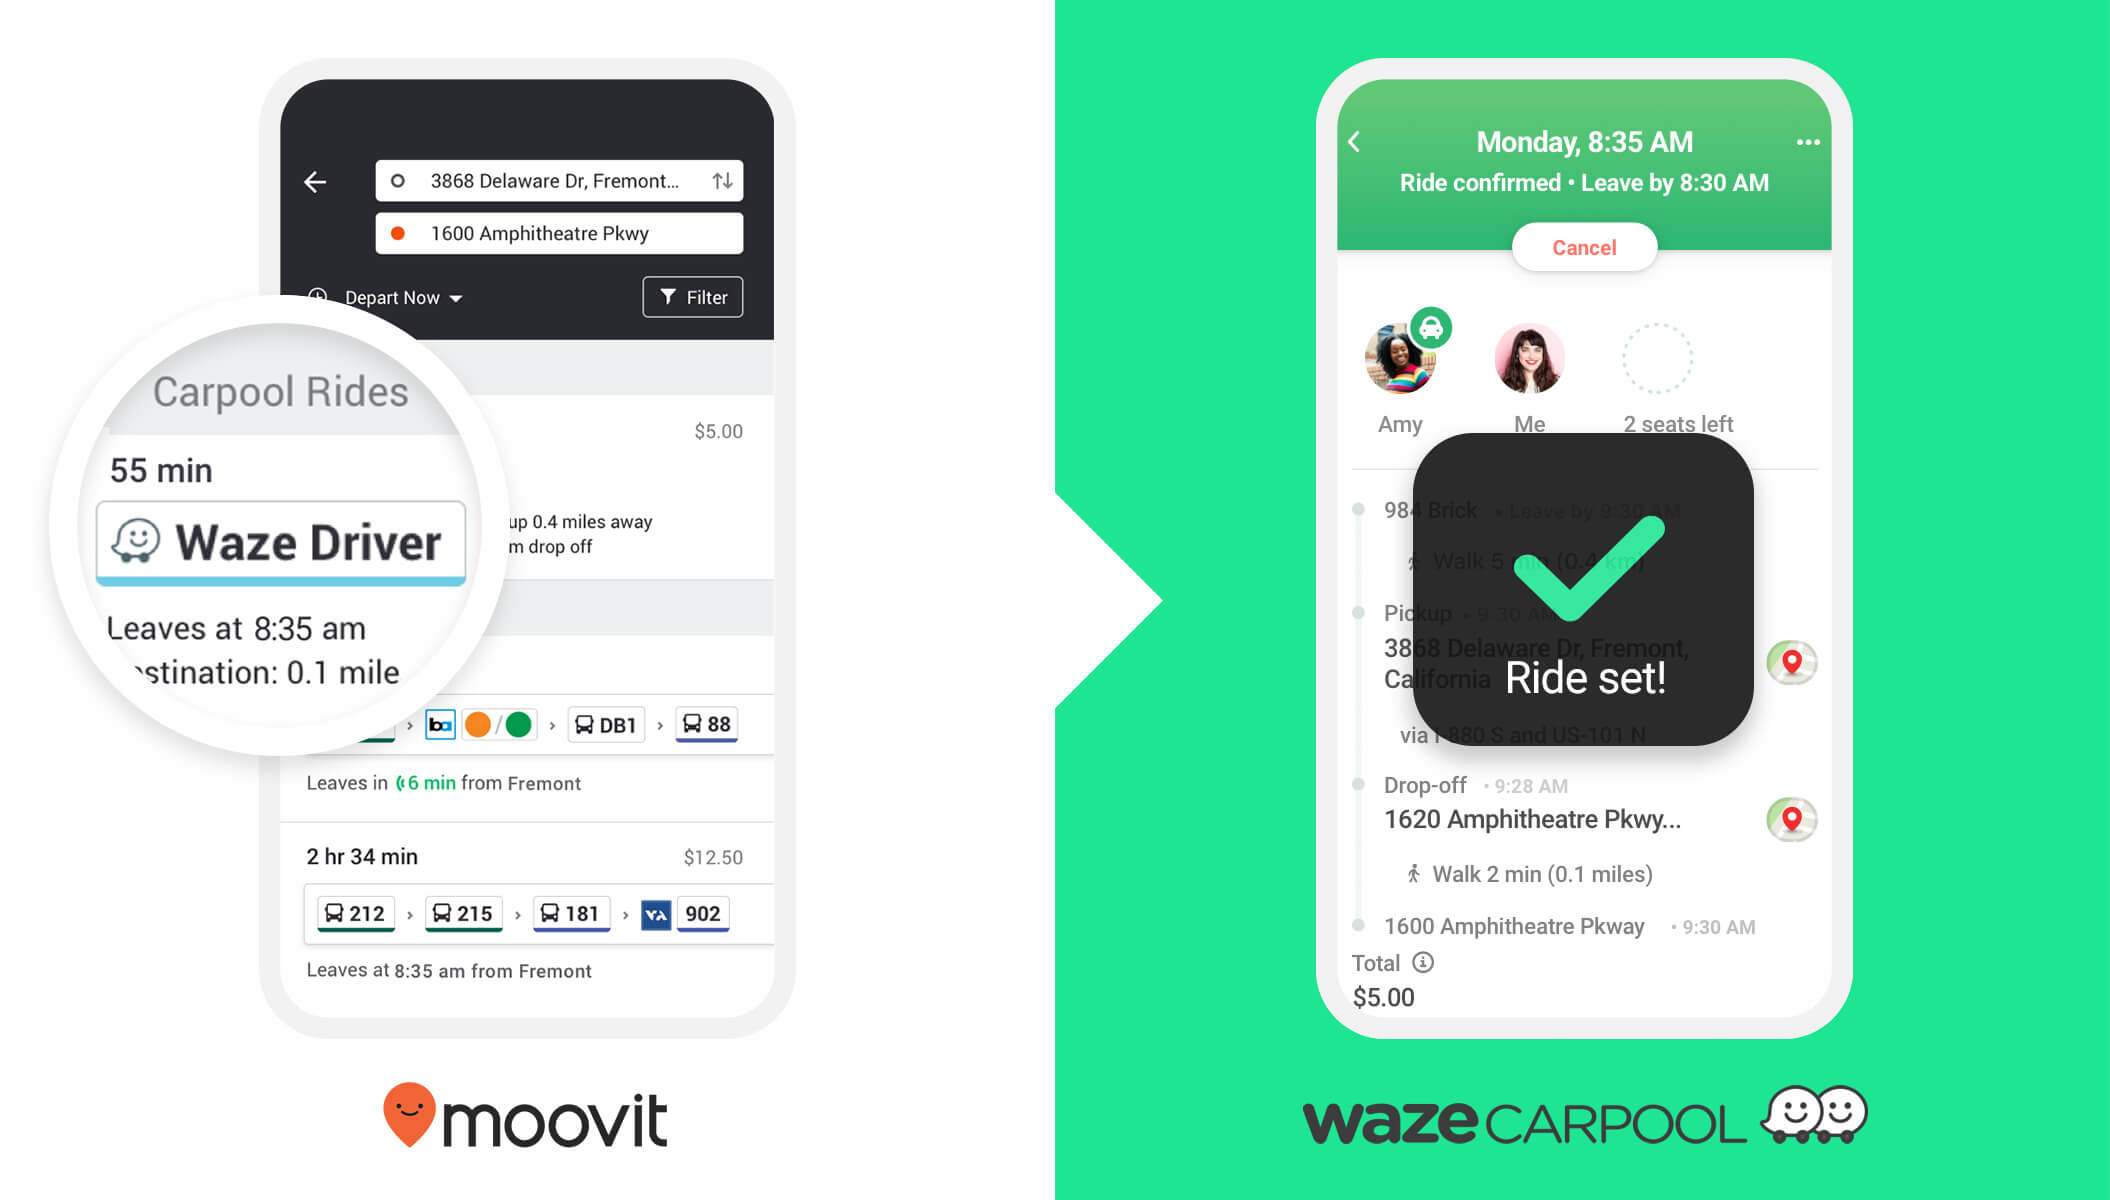 Moovit and Waze Carpool Partnership